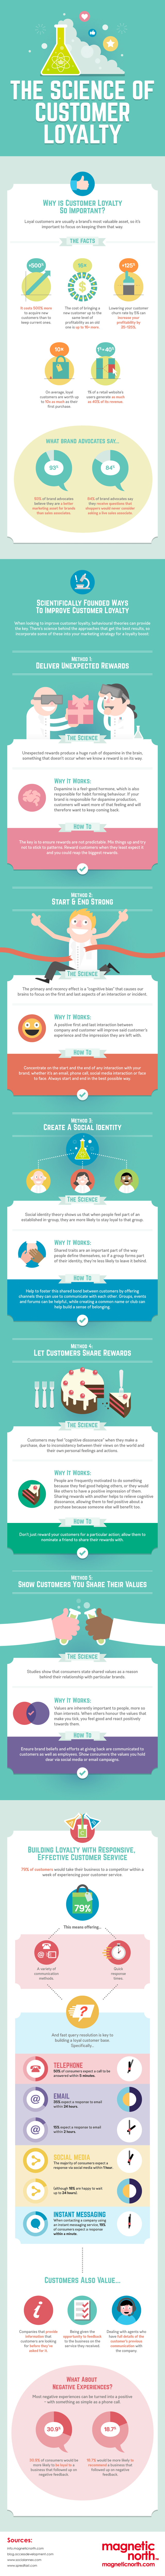 the-science-of-customer-loyalty1